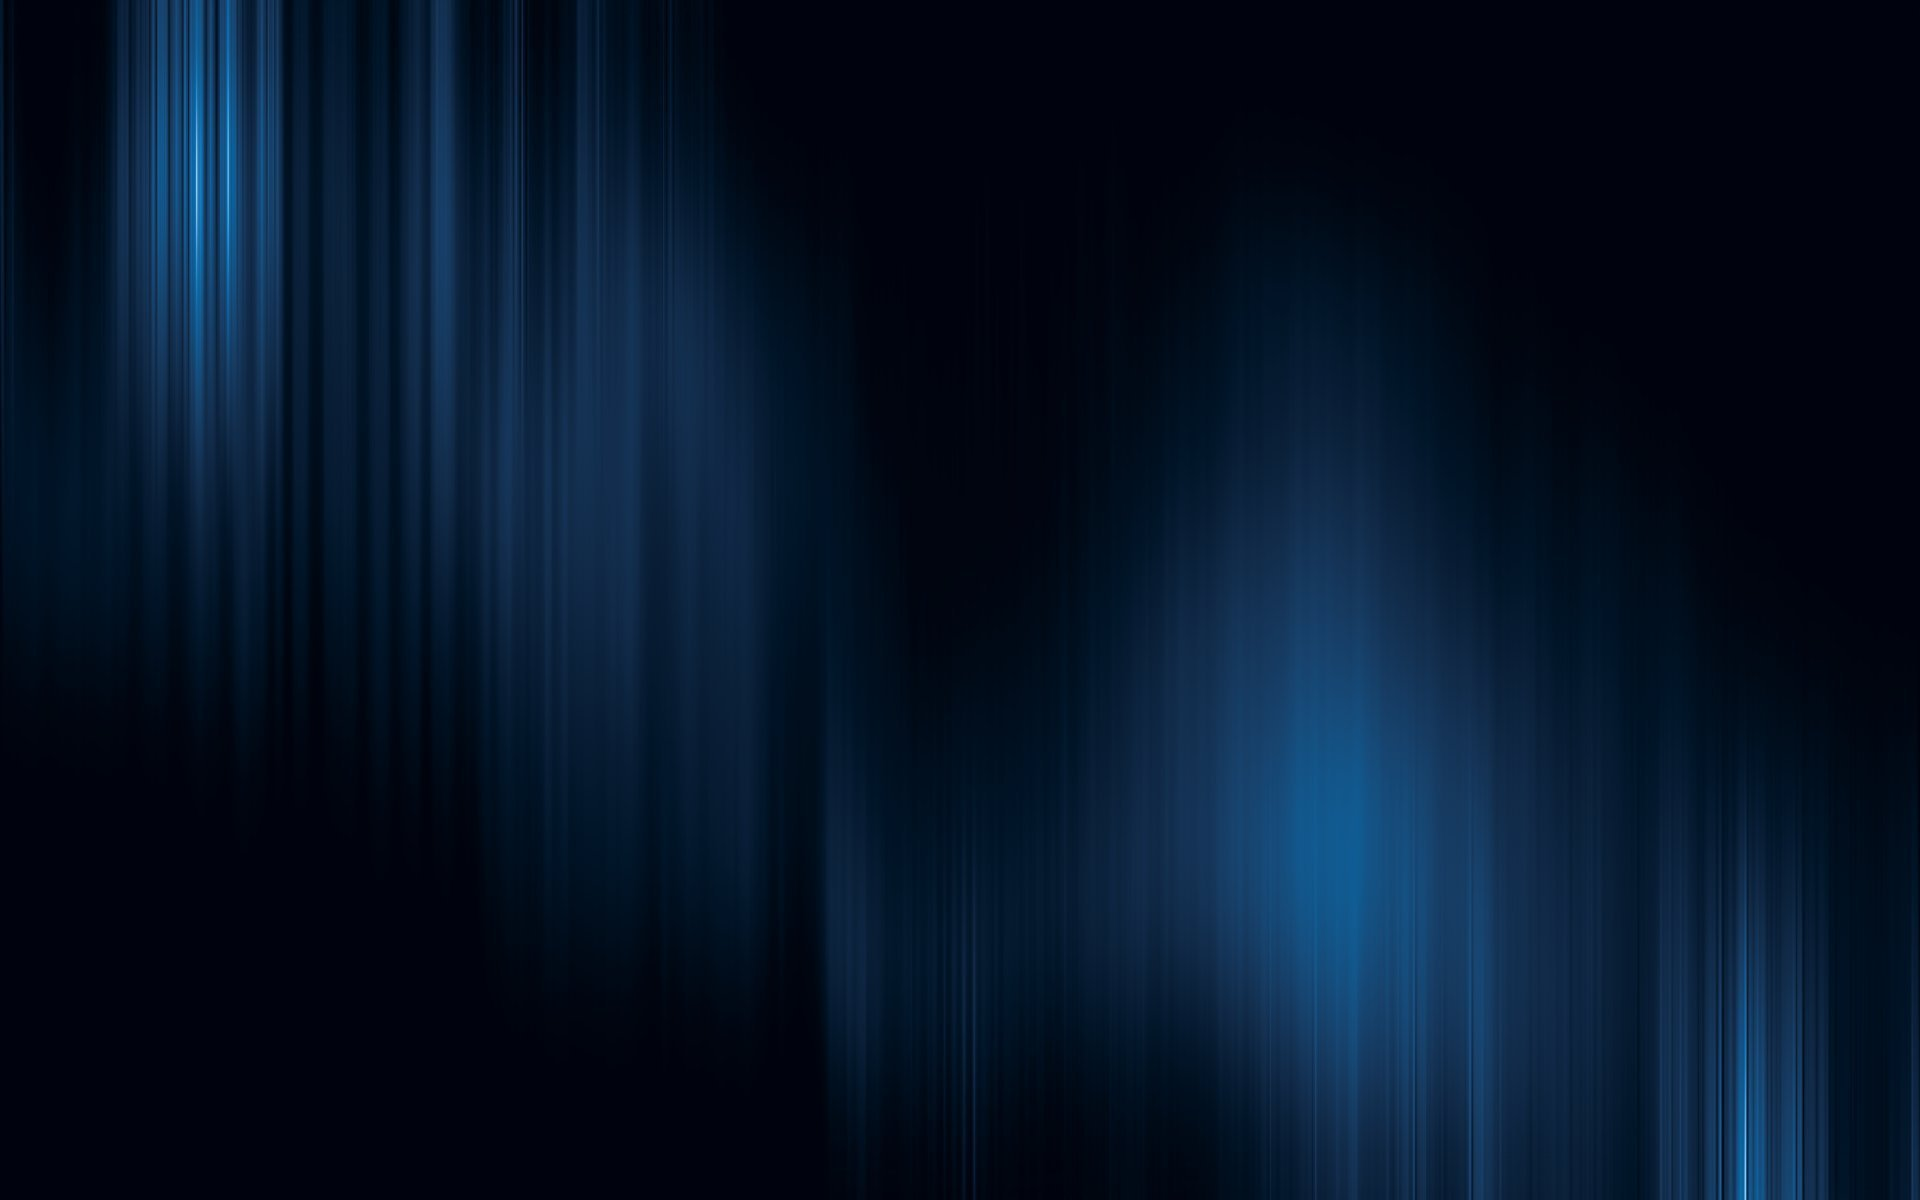 Blue and Black Backgrounds Wallpapers - WallpaperSafari